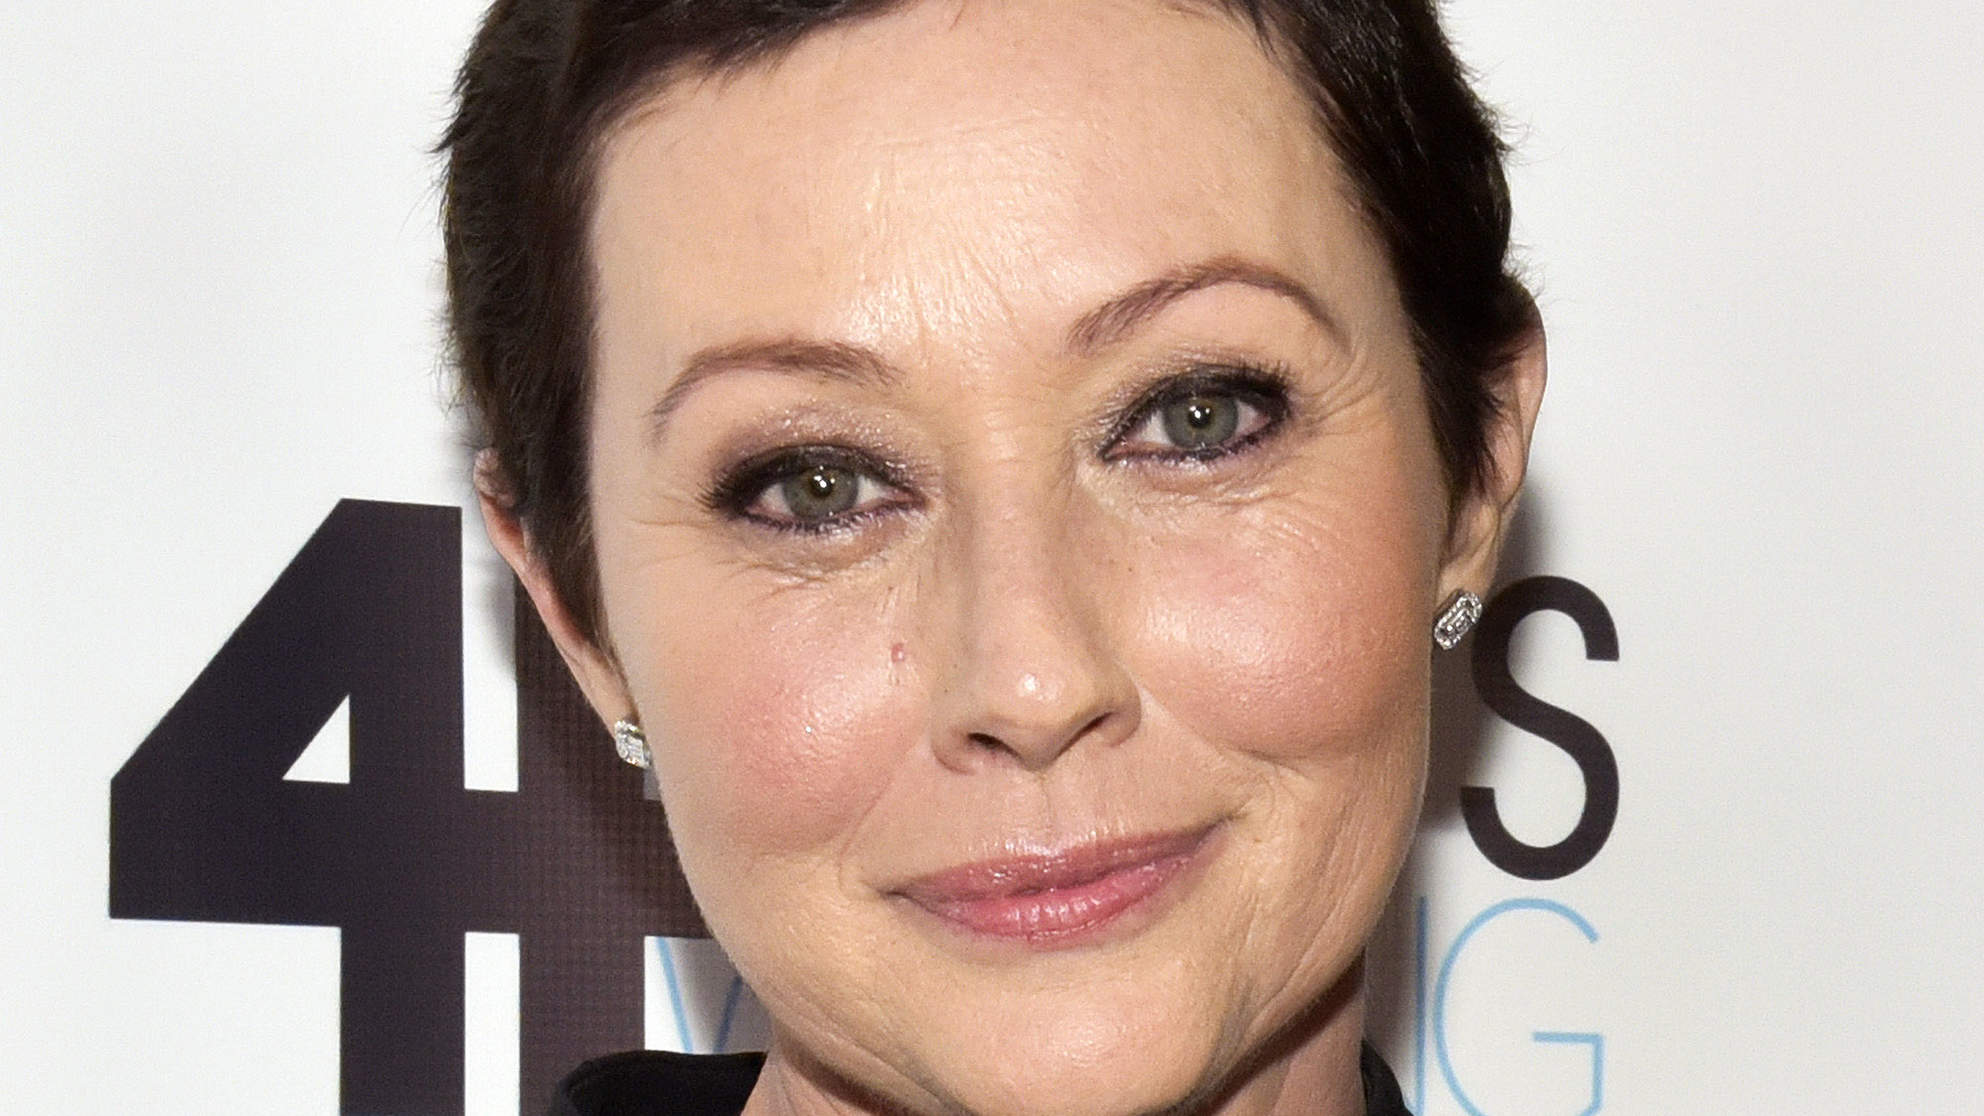 WATCH: Shannen Doherty Looks Healthy and Relaxed During a Dance Class with Her Mom